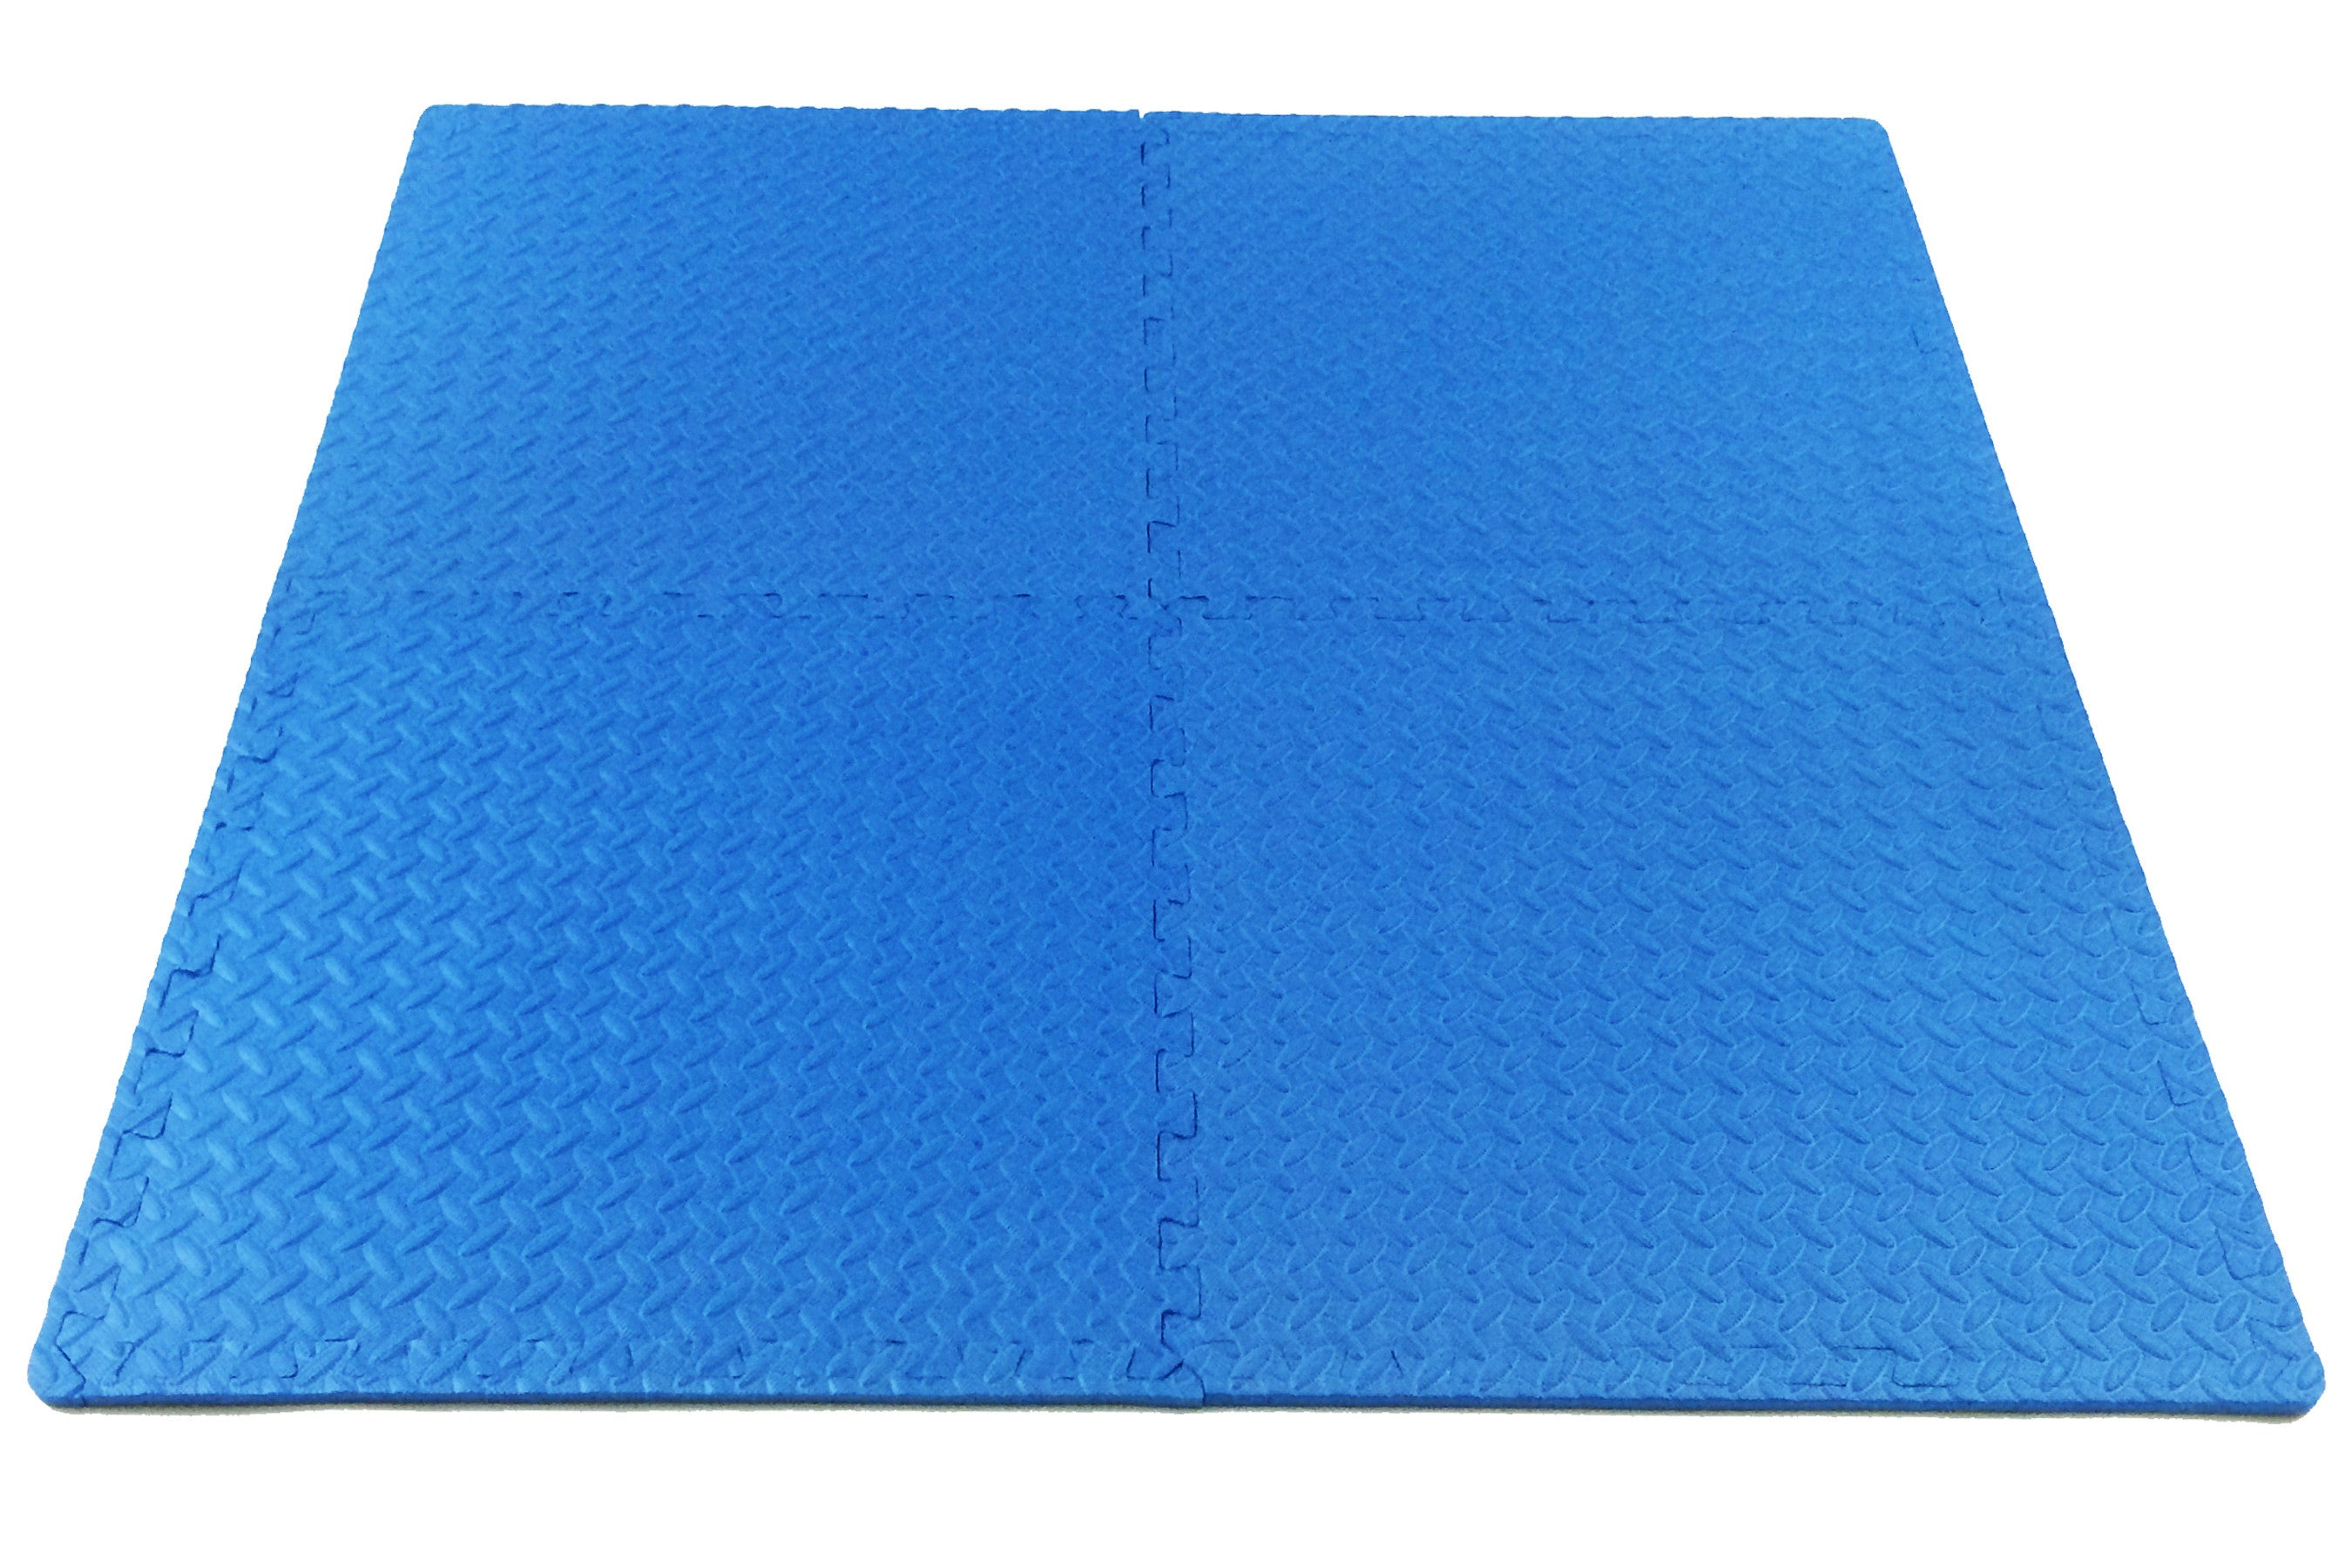 mats colors kids babies softly is play young extra pastel a mat soothing nice are colored areas children which puzzle large floor the and sometimes for